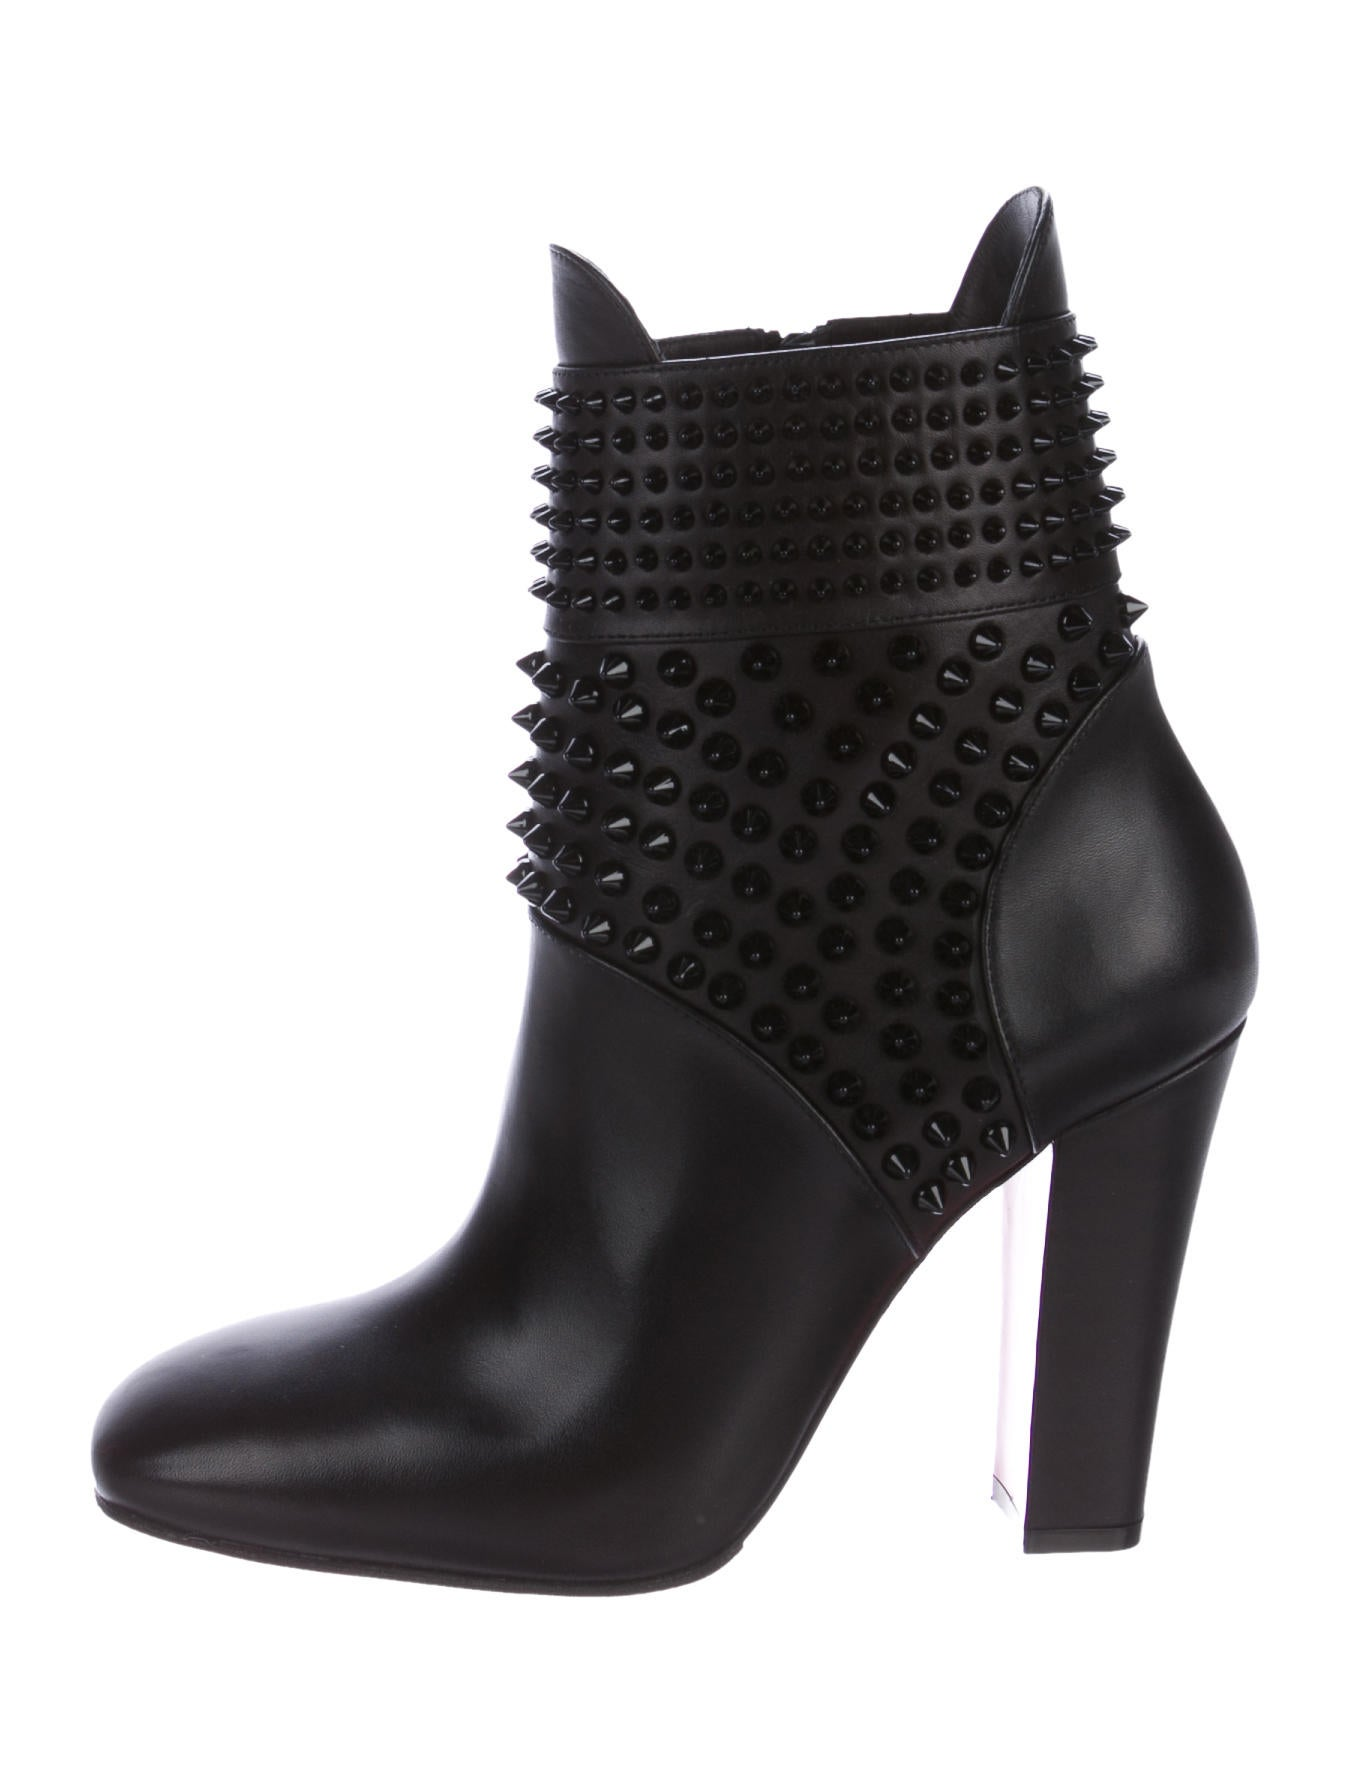 ddd8bd5d50ae2 Christian Louboutin Praguoise Studded Boots - Shoes - CHT76081 | The ...